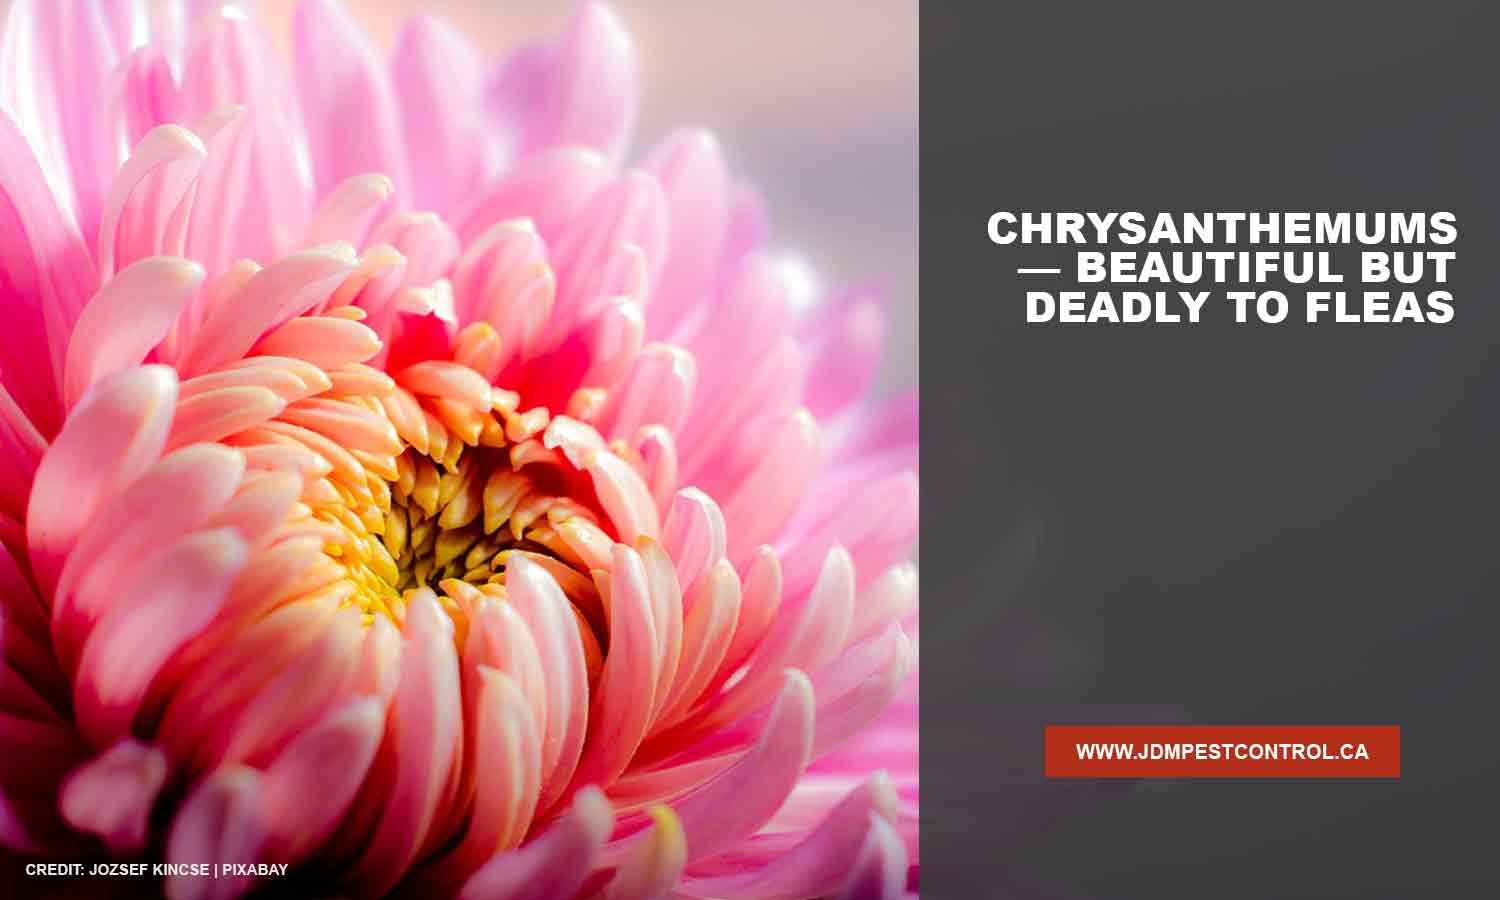 Chrysanthemums — beautiful but deadly to fleas